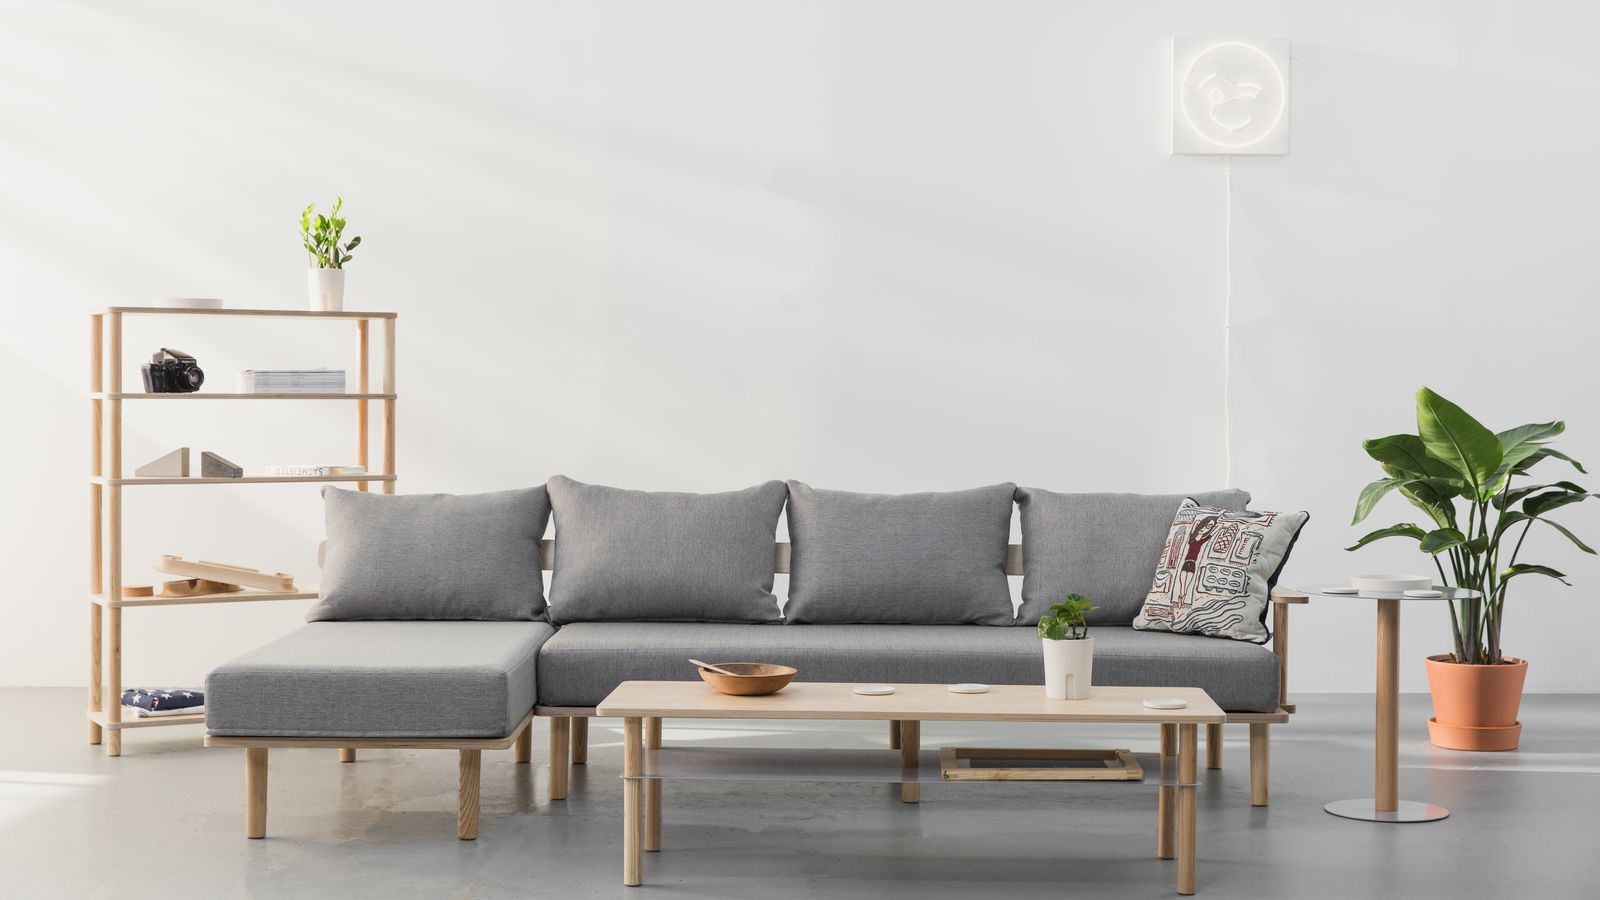 Ikea Sofa Japan Ikea Challenger Greycork Expands Flatpack Furniture